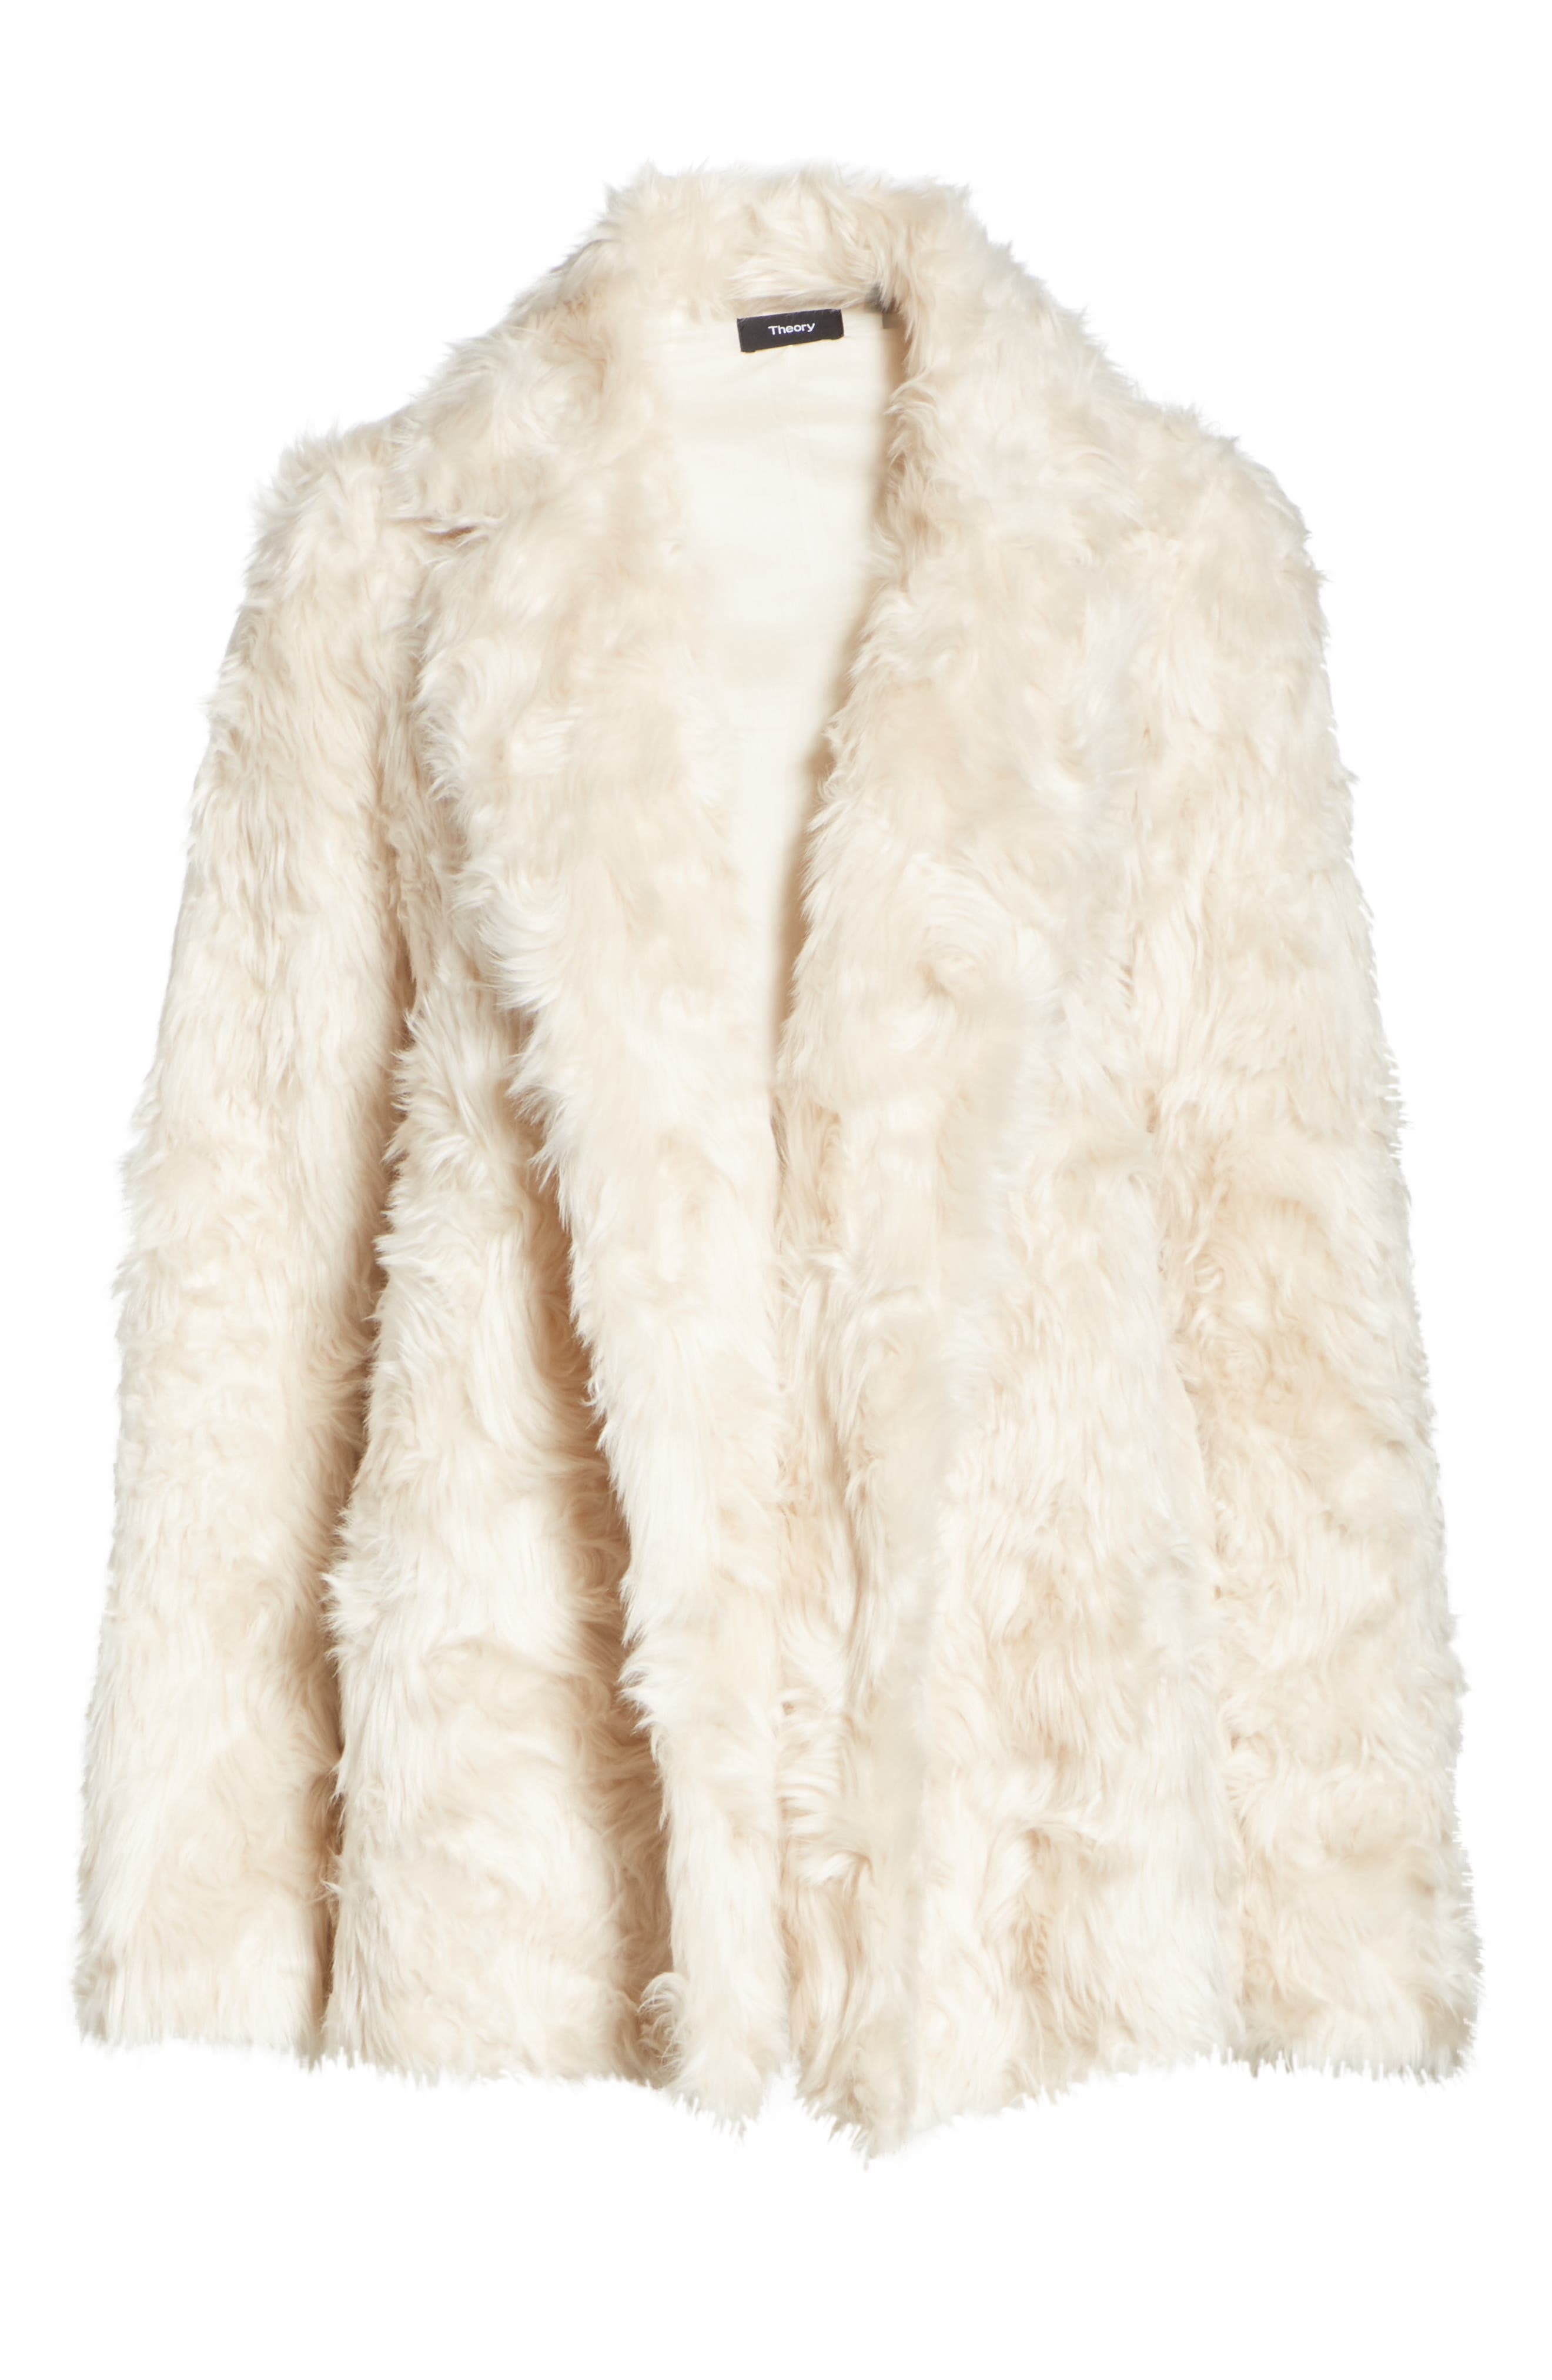 THEORY, Clairene Faux Fur Jacket, Alternate thumbnail 5, color, 907